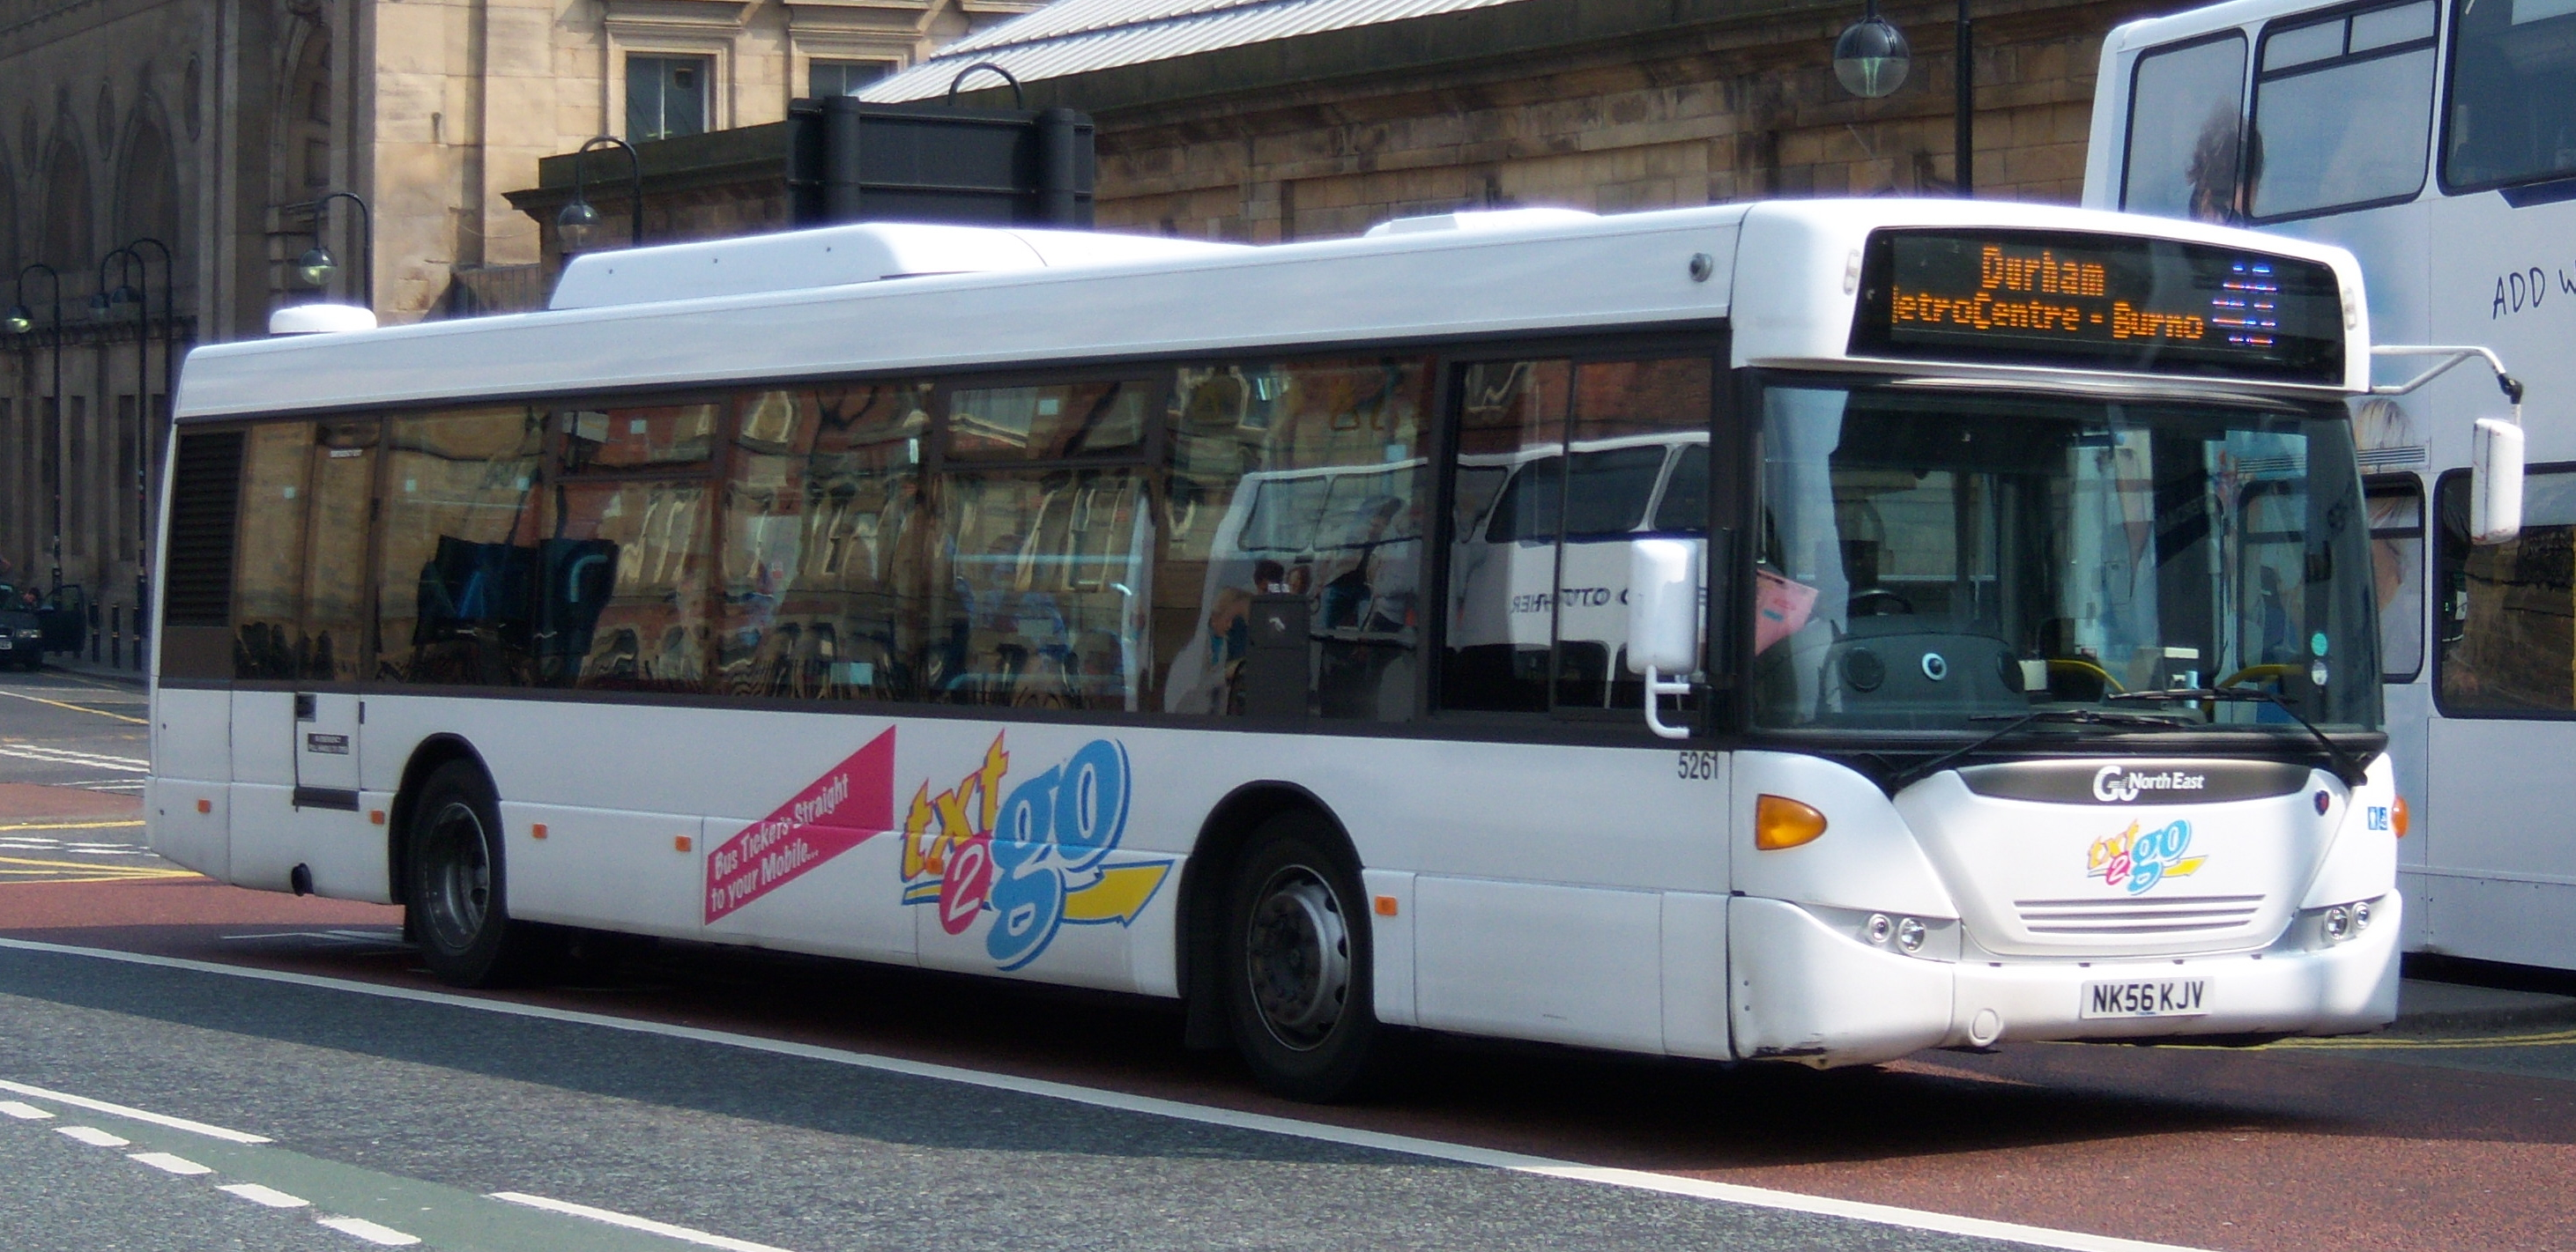 File:Go North East bus 5261 Scania CN230 Omnicity NK56 KJV Txt2Go livery in Newcastle